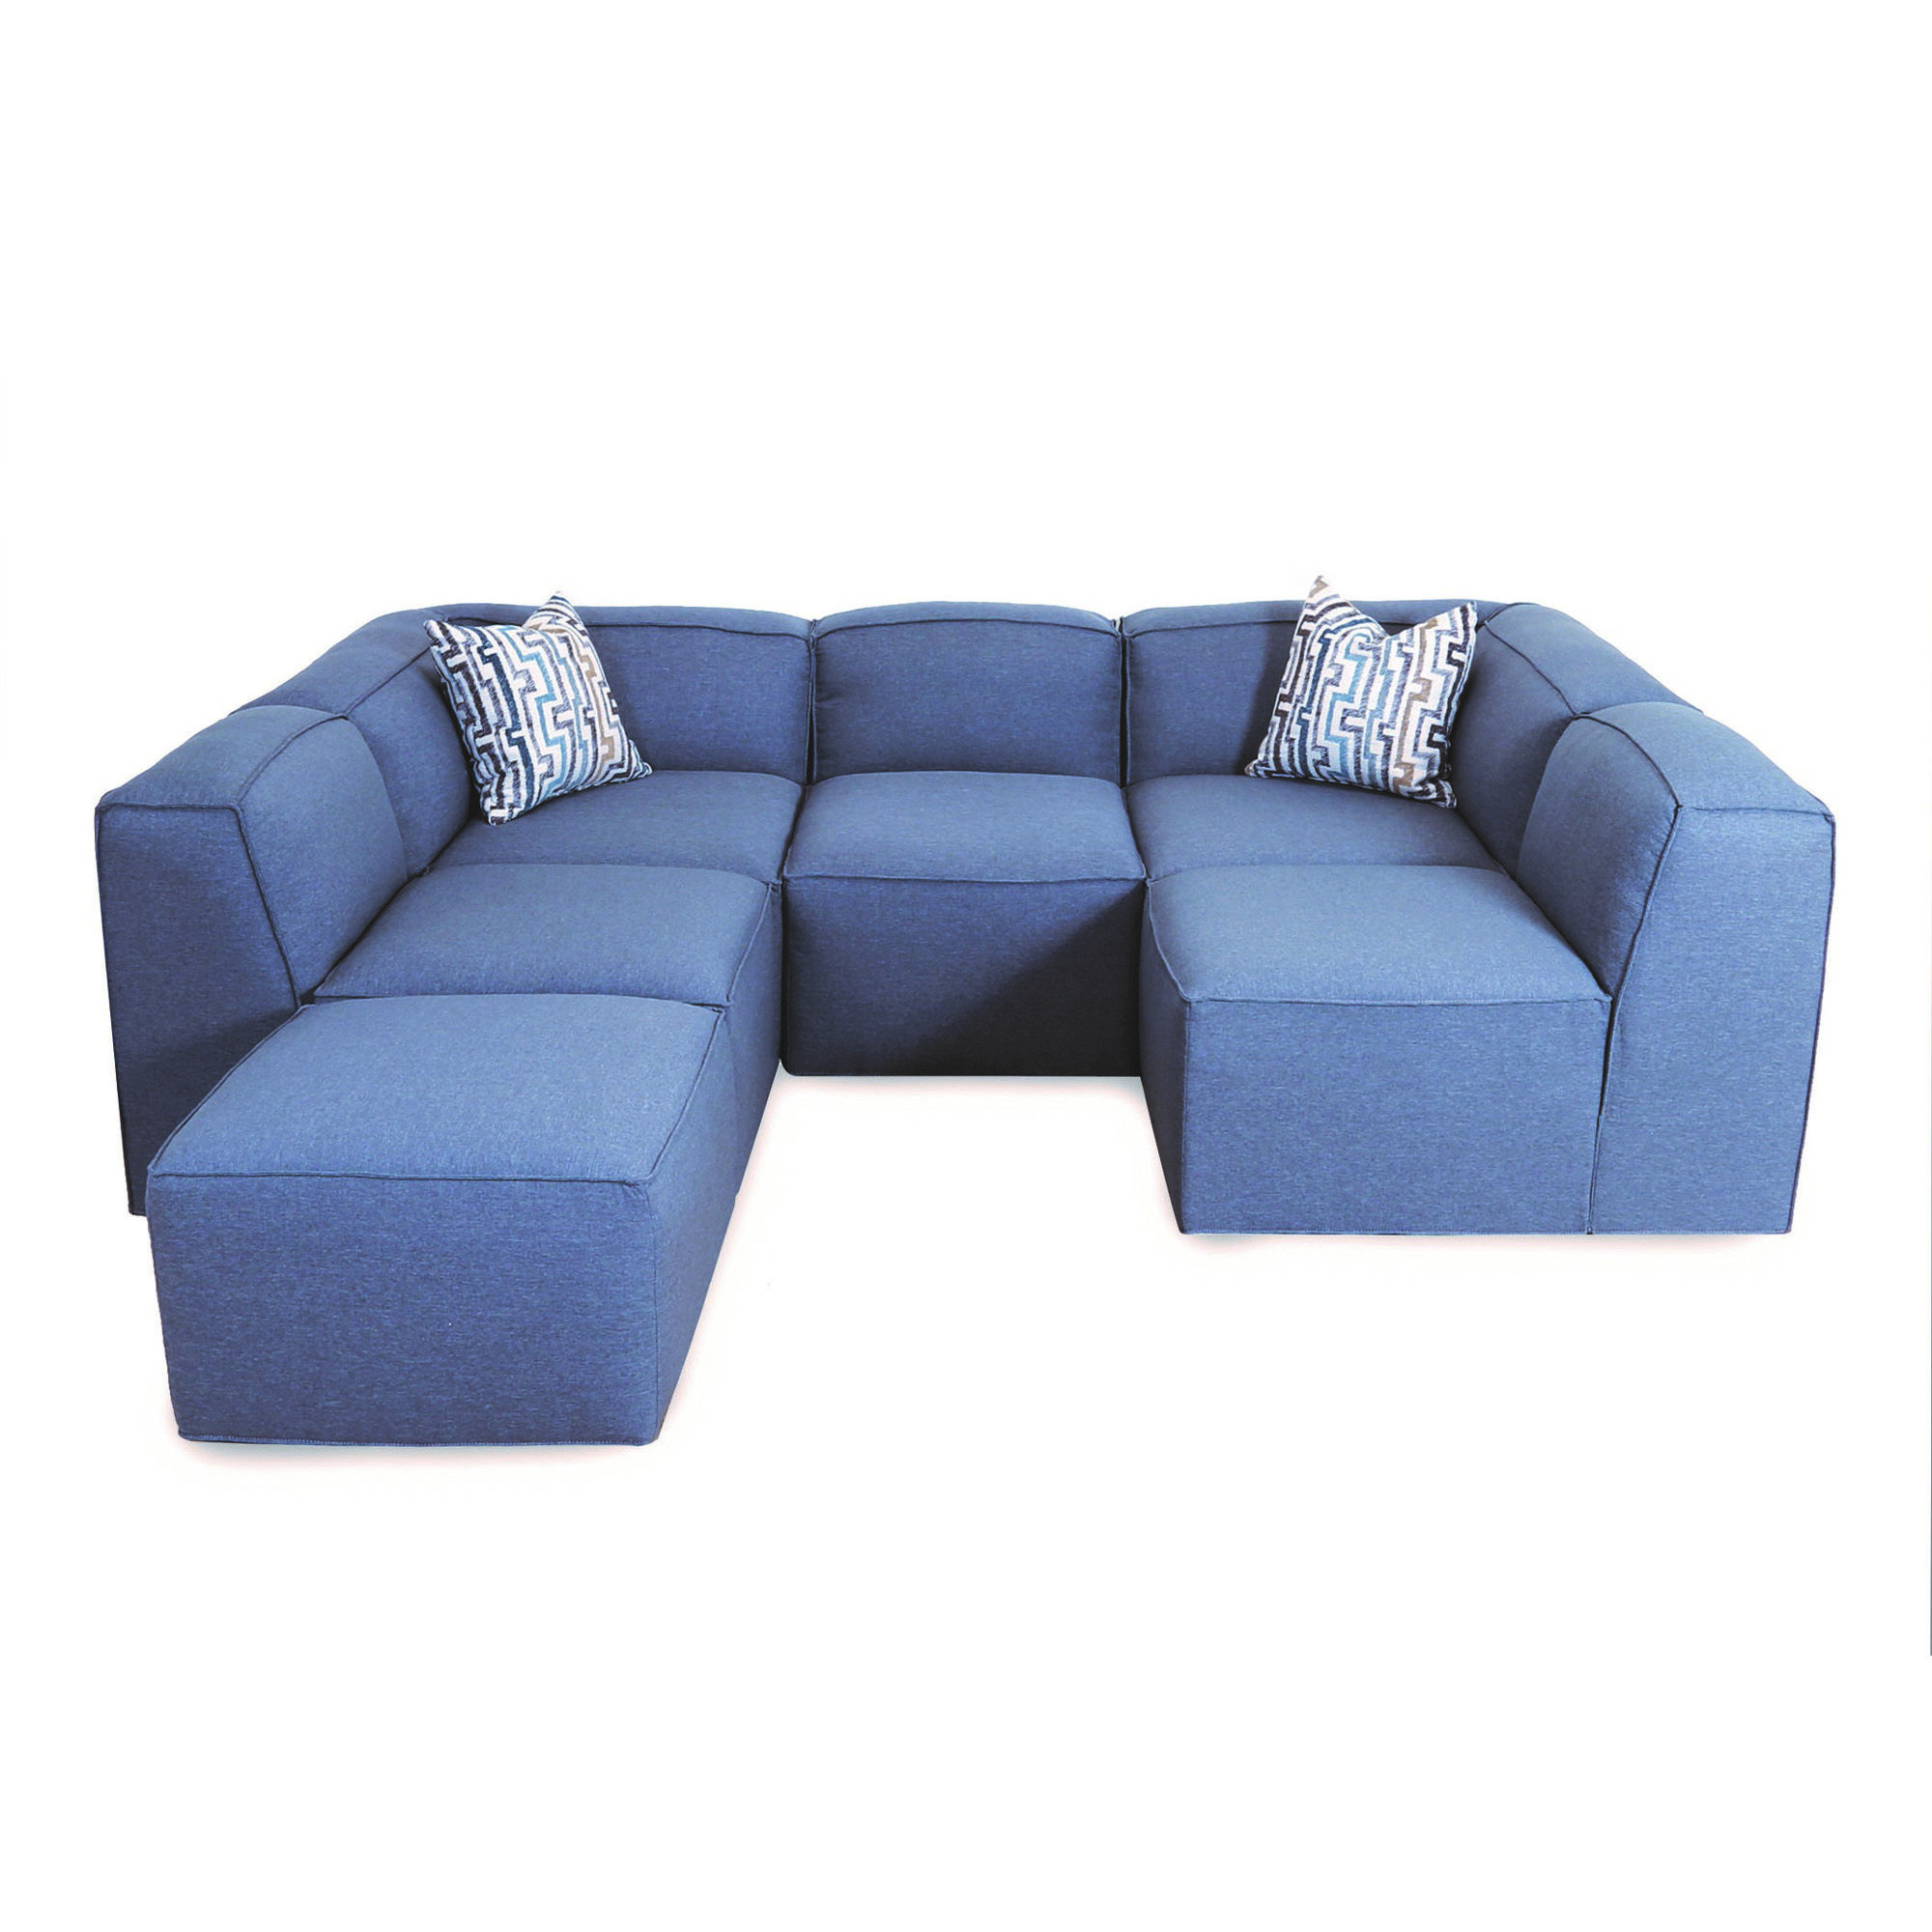 Rent to Own Sectional Sofas and Couches  Aarons